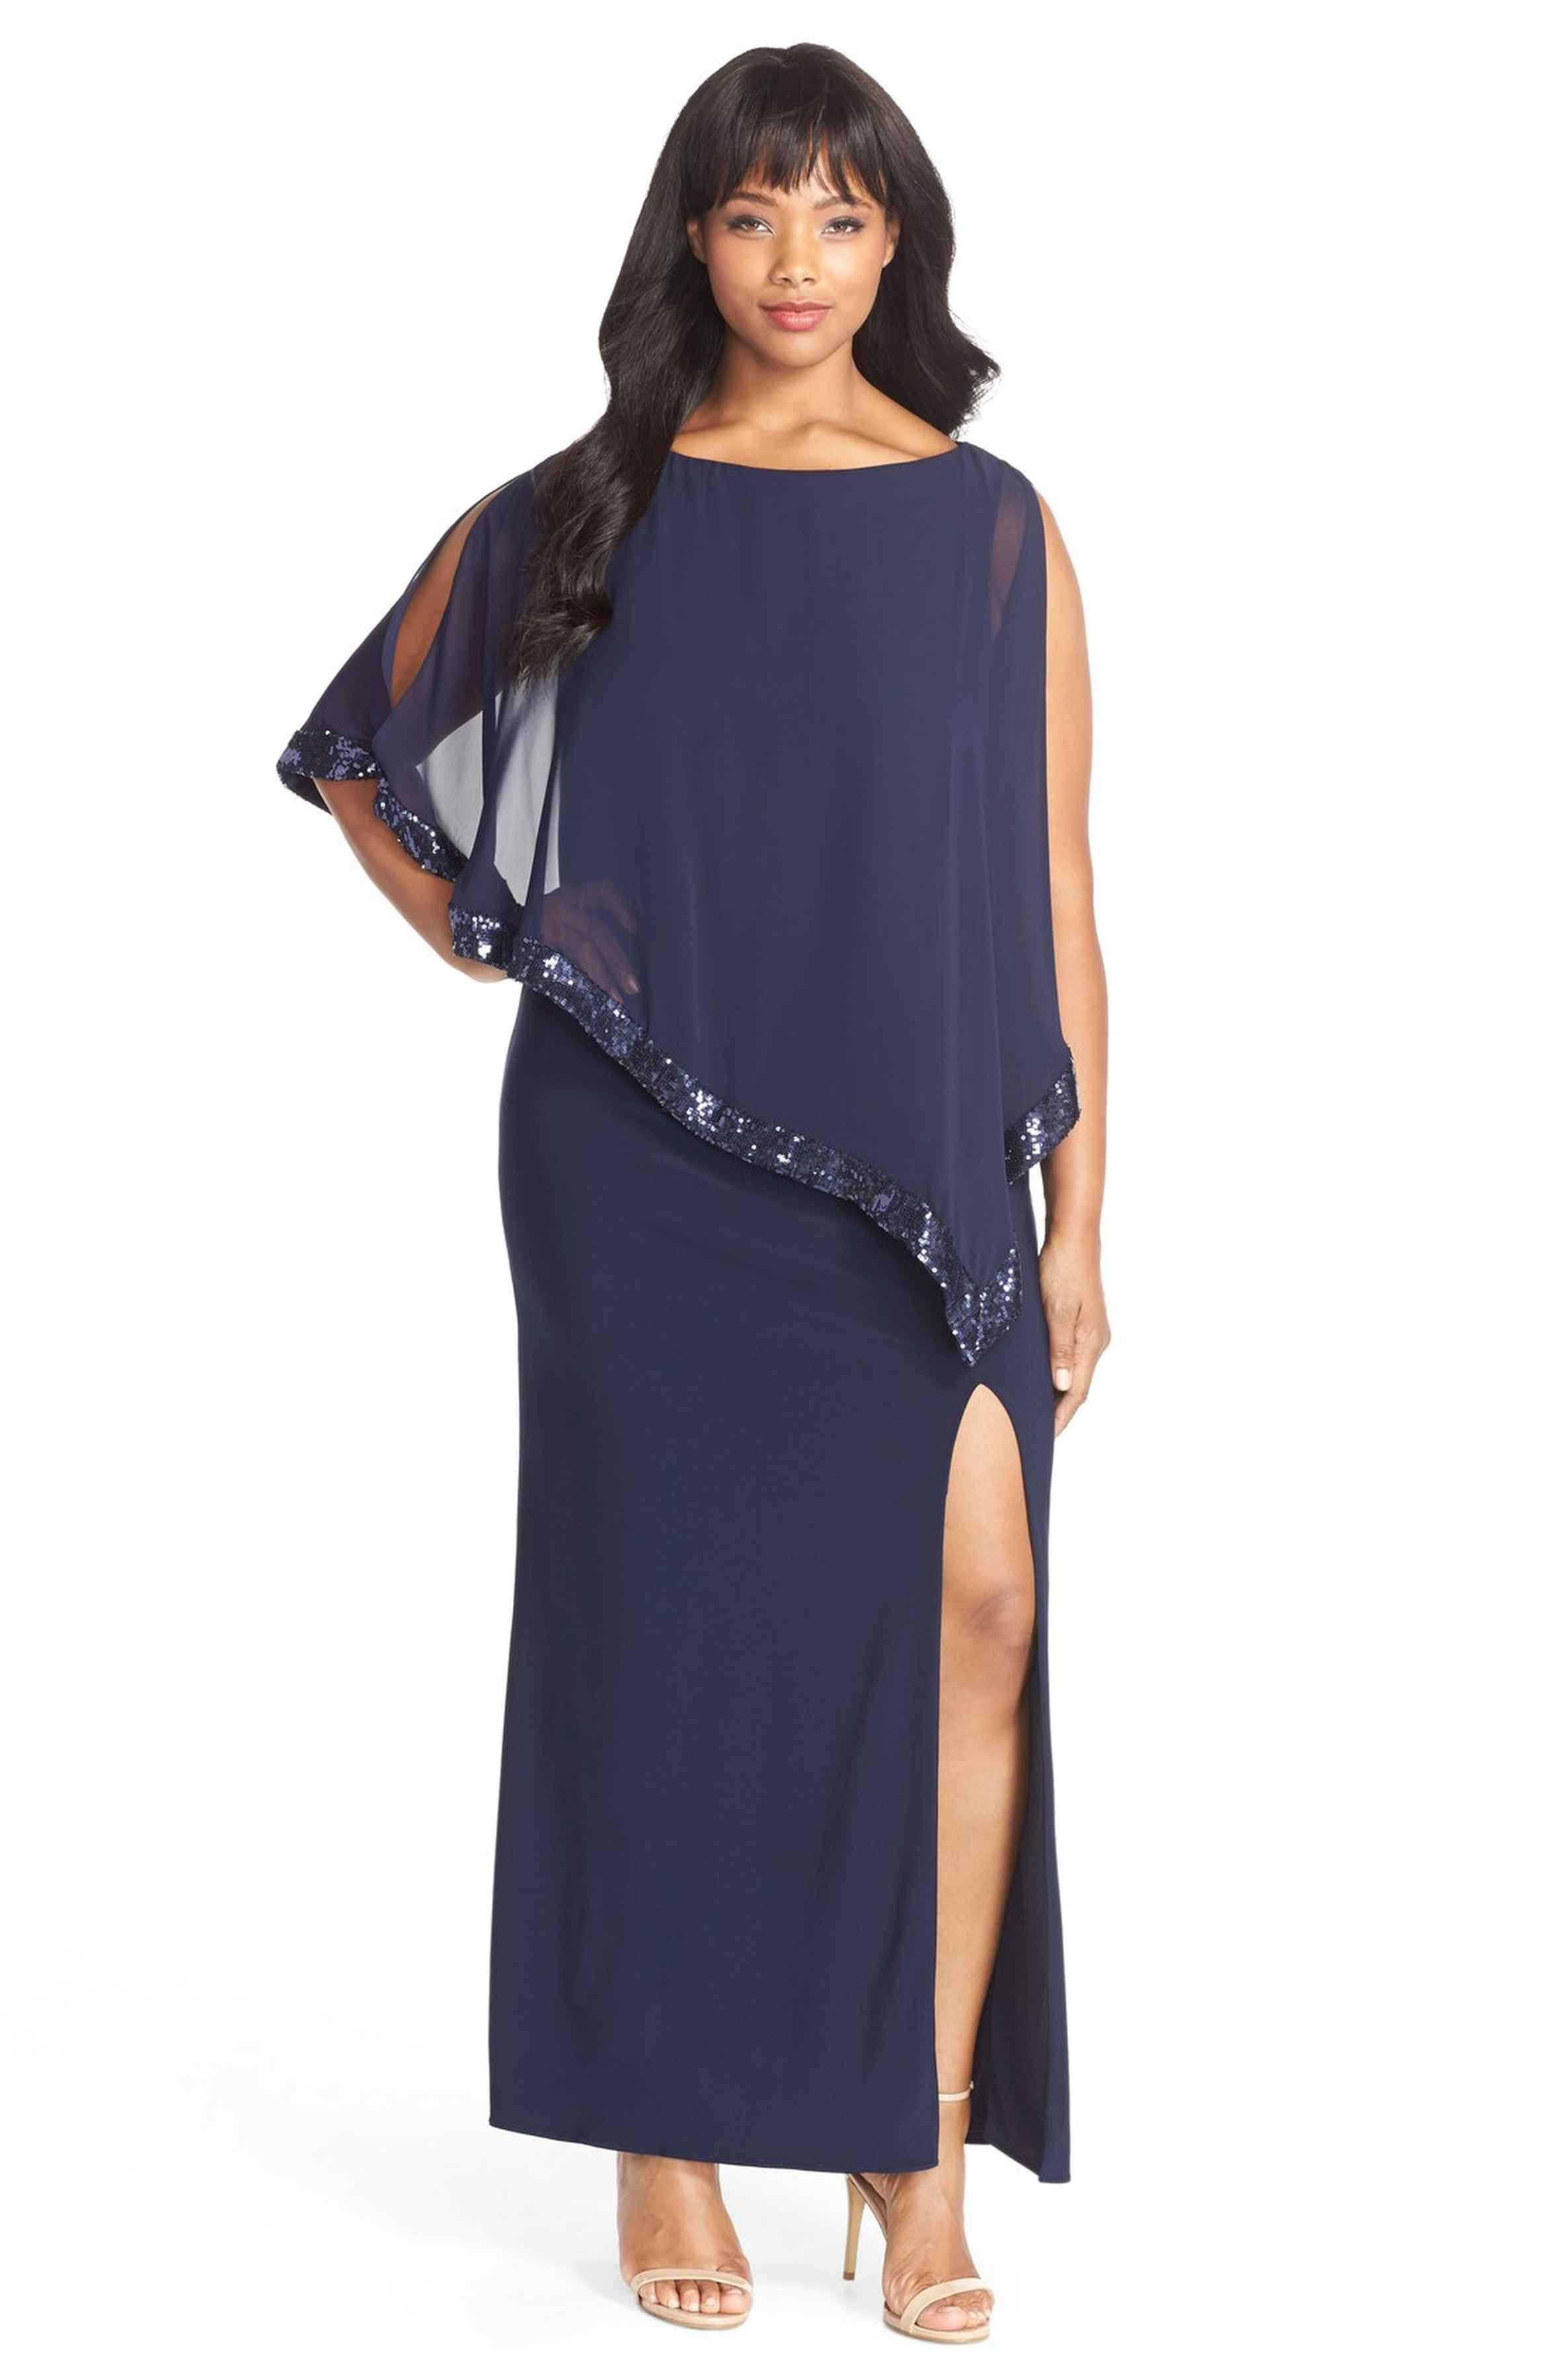 f2ca44de0b144 Main Image - Xscape Jersey Gown with Sequin Trim Chiffon Overlay (Plus Size)